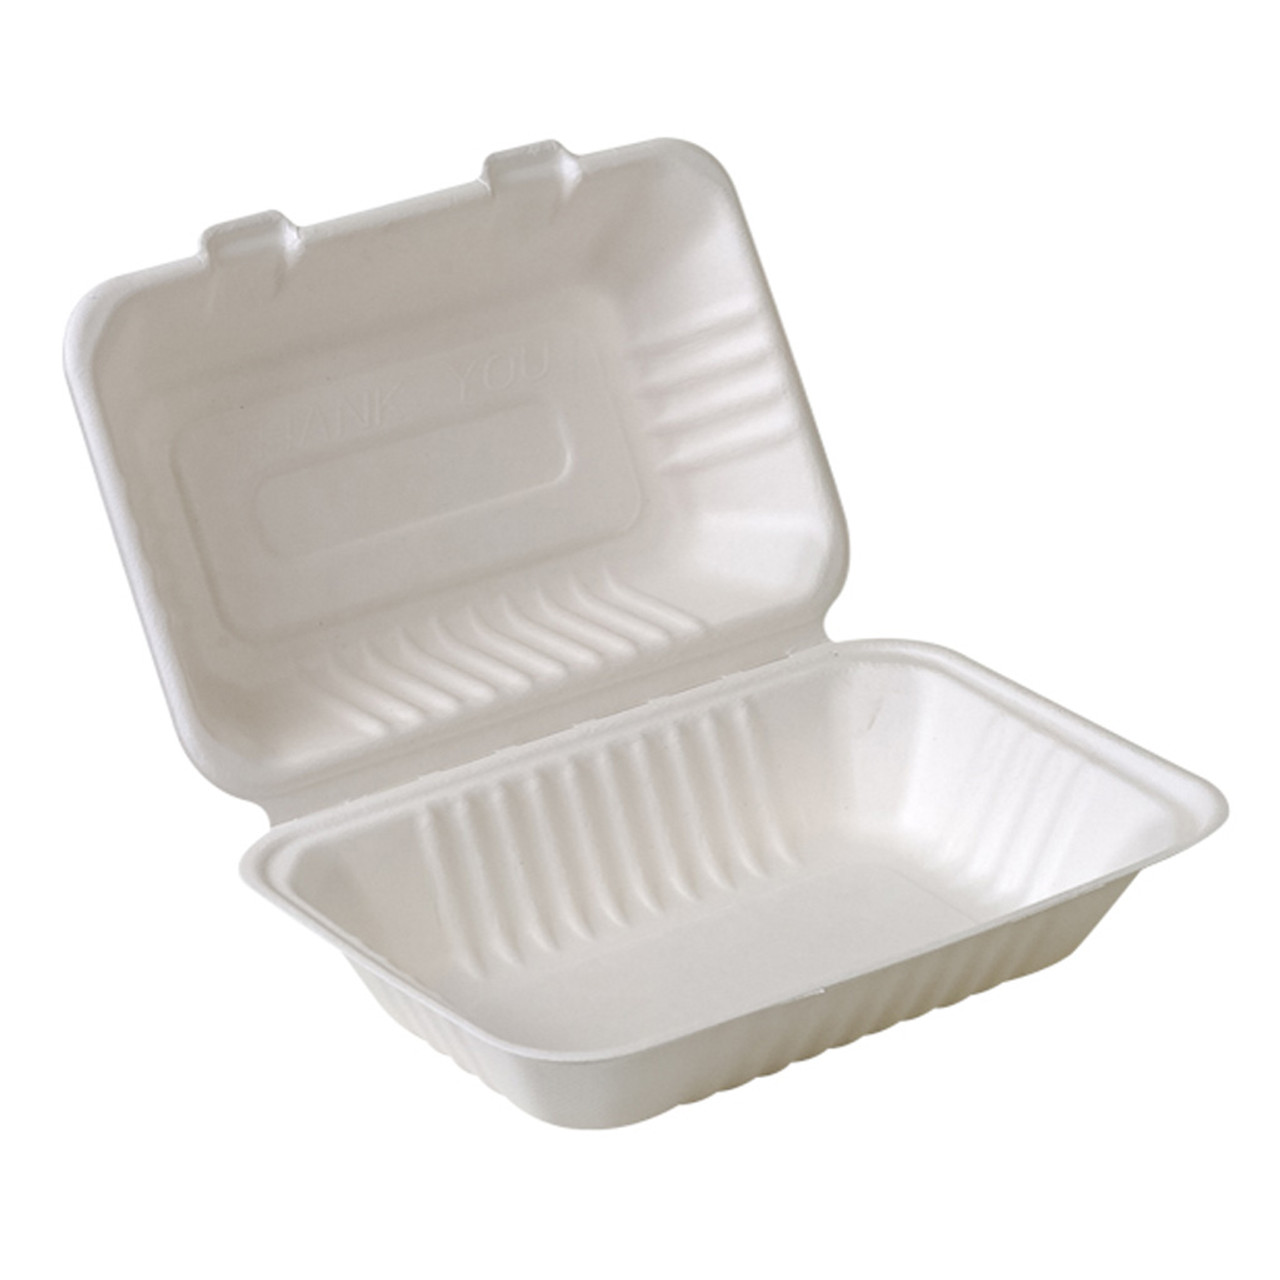 "Compostable Sugarcane Clamshell - 9"" x 6"" - Case of 200"